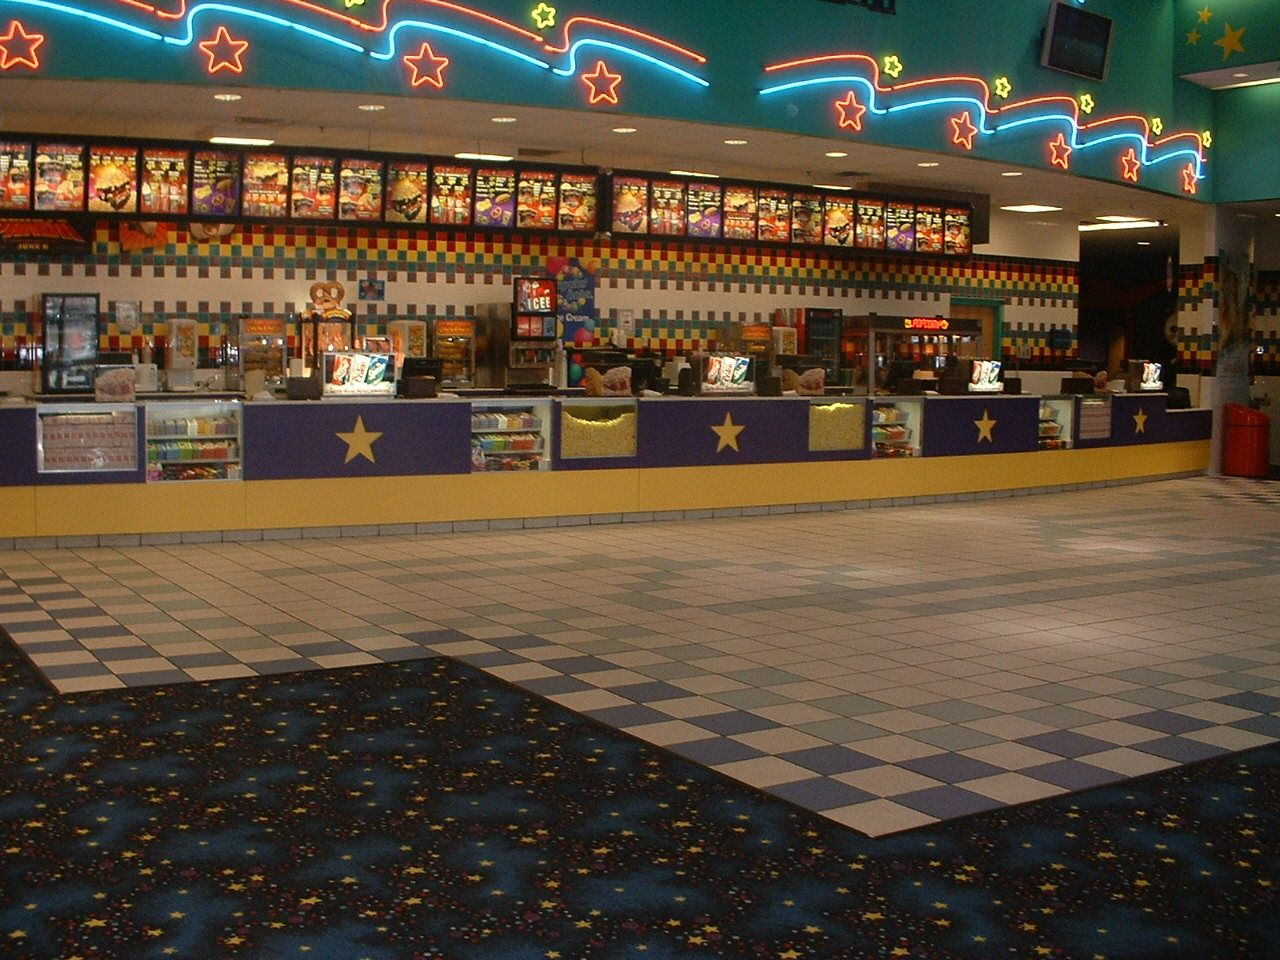 Concession Stand Galleria 14 Beckley Wv